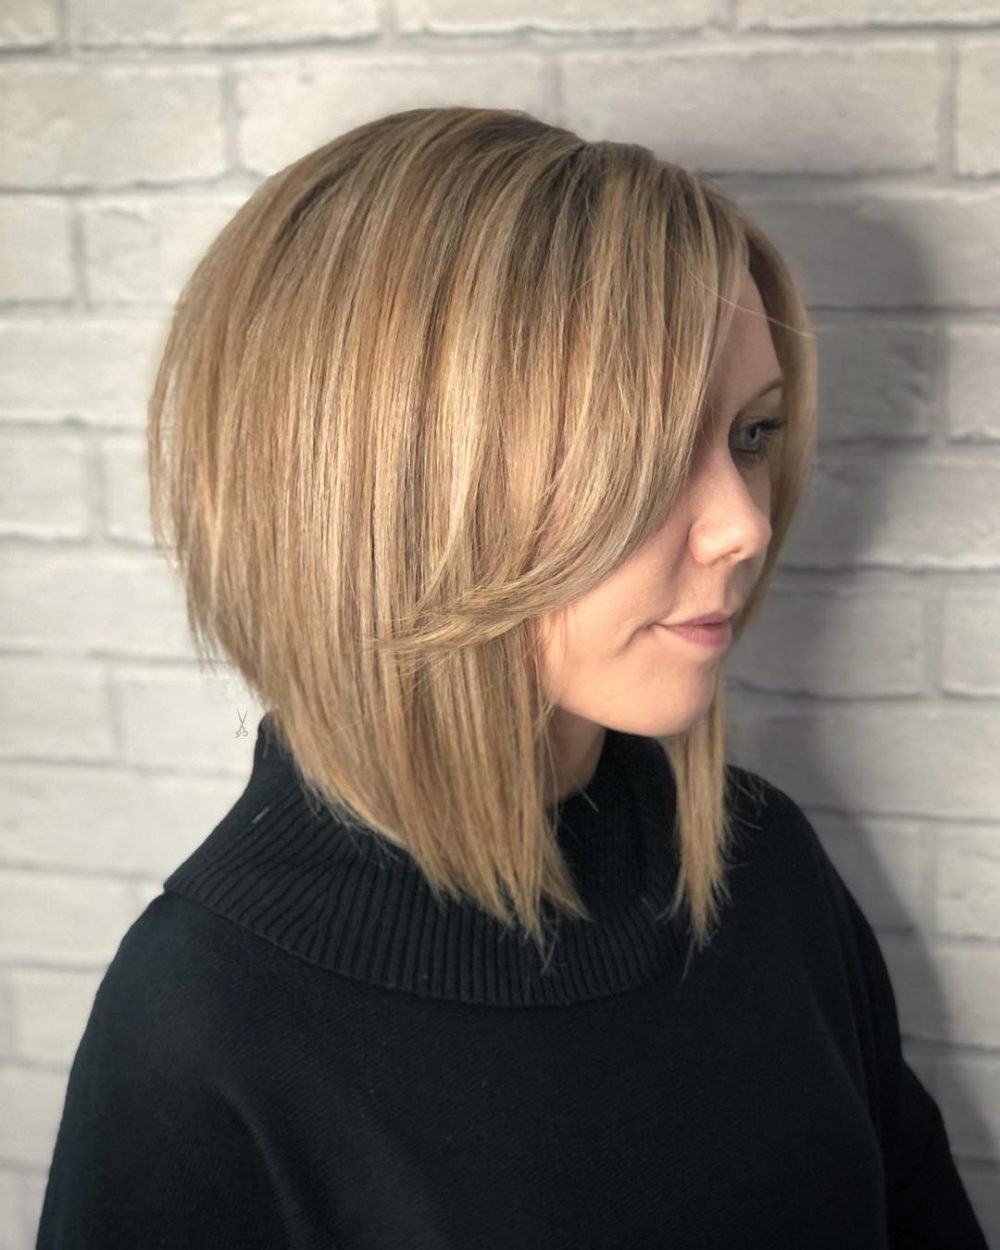 34 Greatest Short Haircuts And Hairstyles For Thick Hair For 2018 With Short Layered Hairstyles For Thick Hair (View 10 of 20)